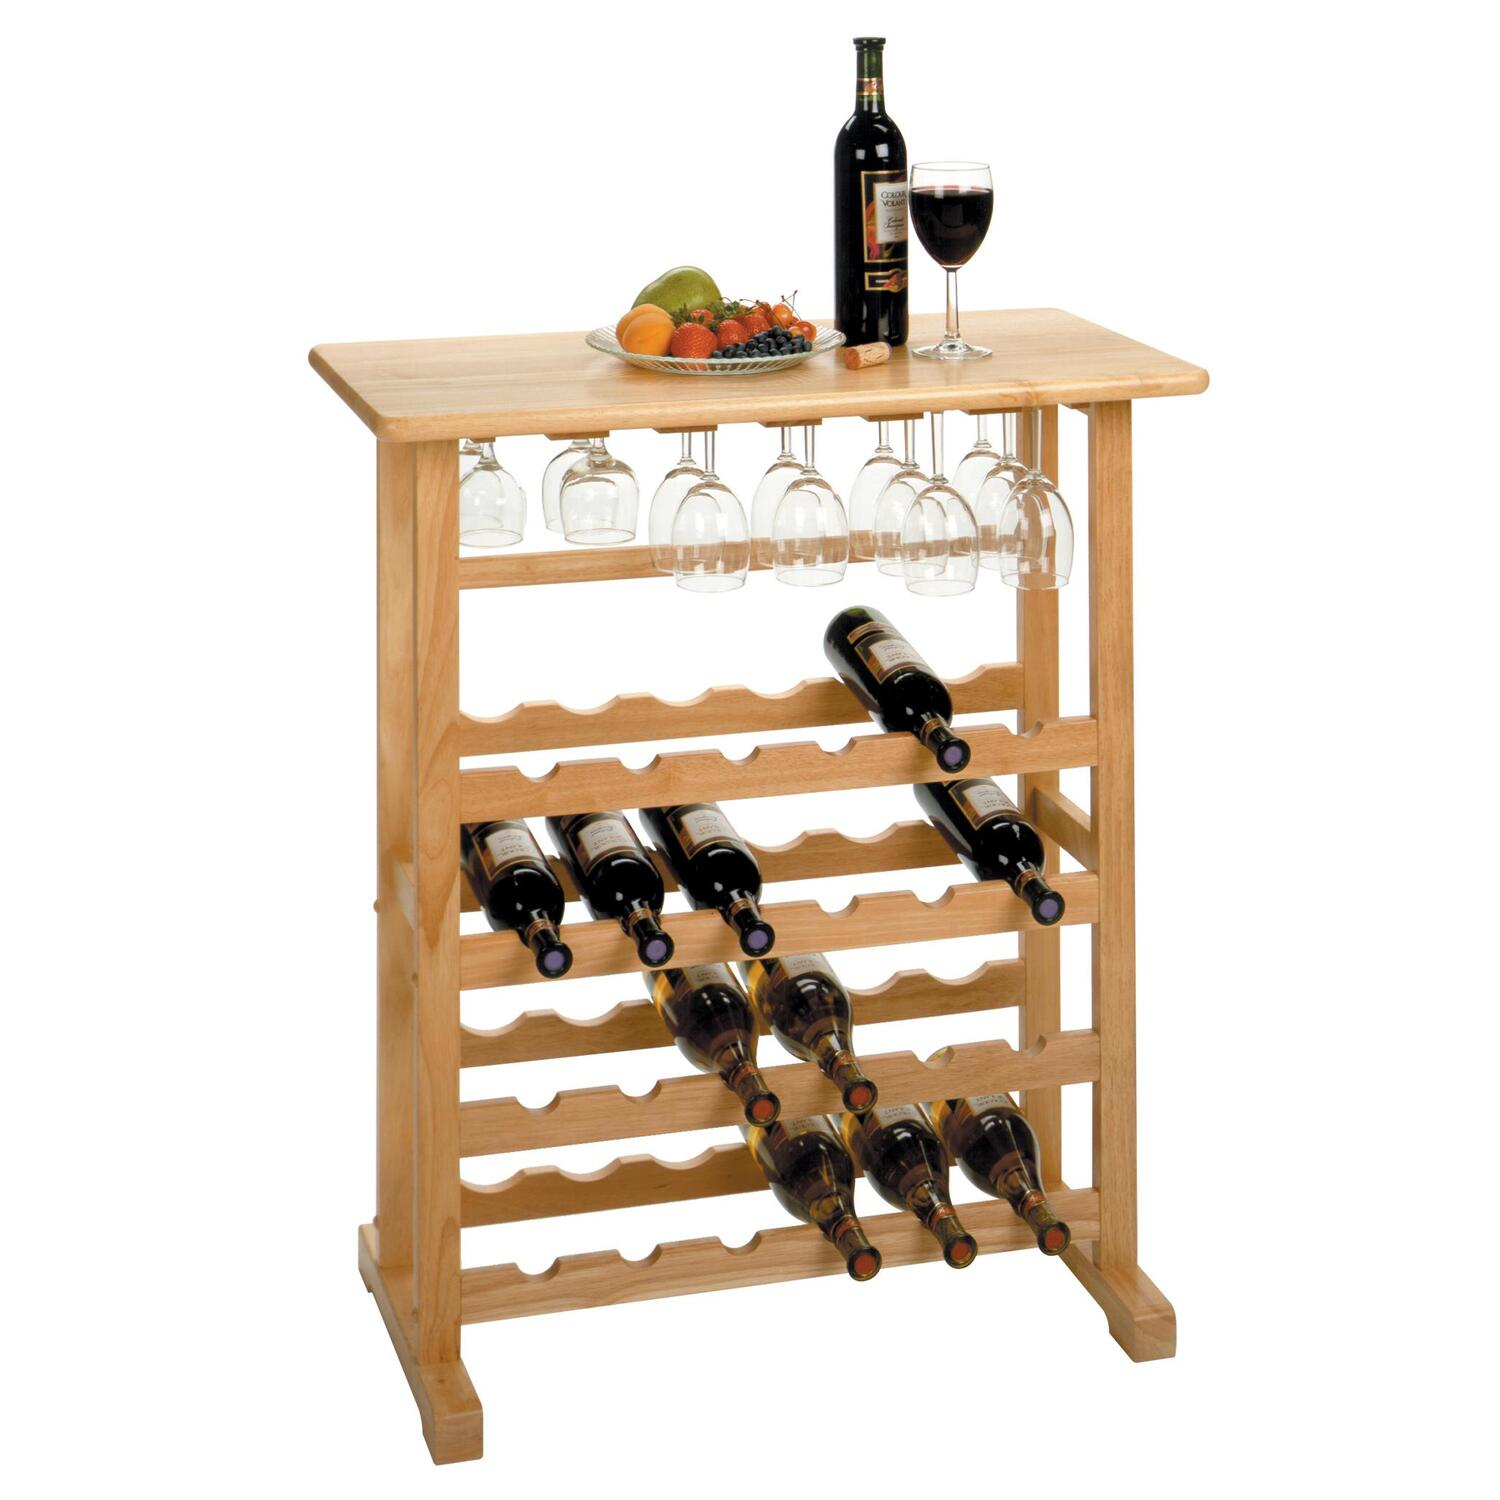 Winsome 24 bottle wine rack with glass rack by oj commerce 83024 - Small space wine racks design ...